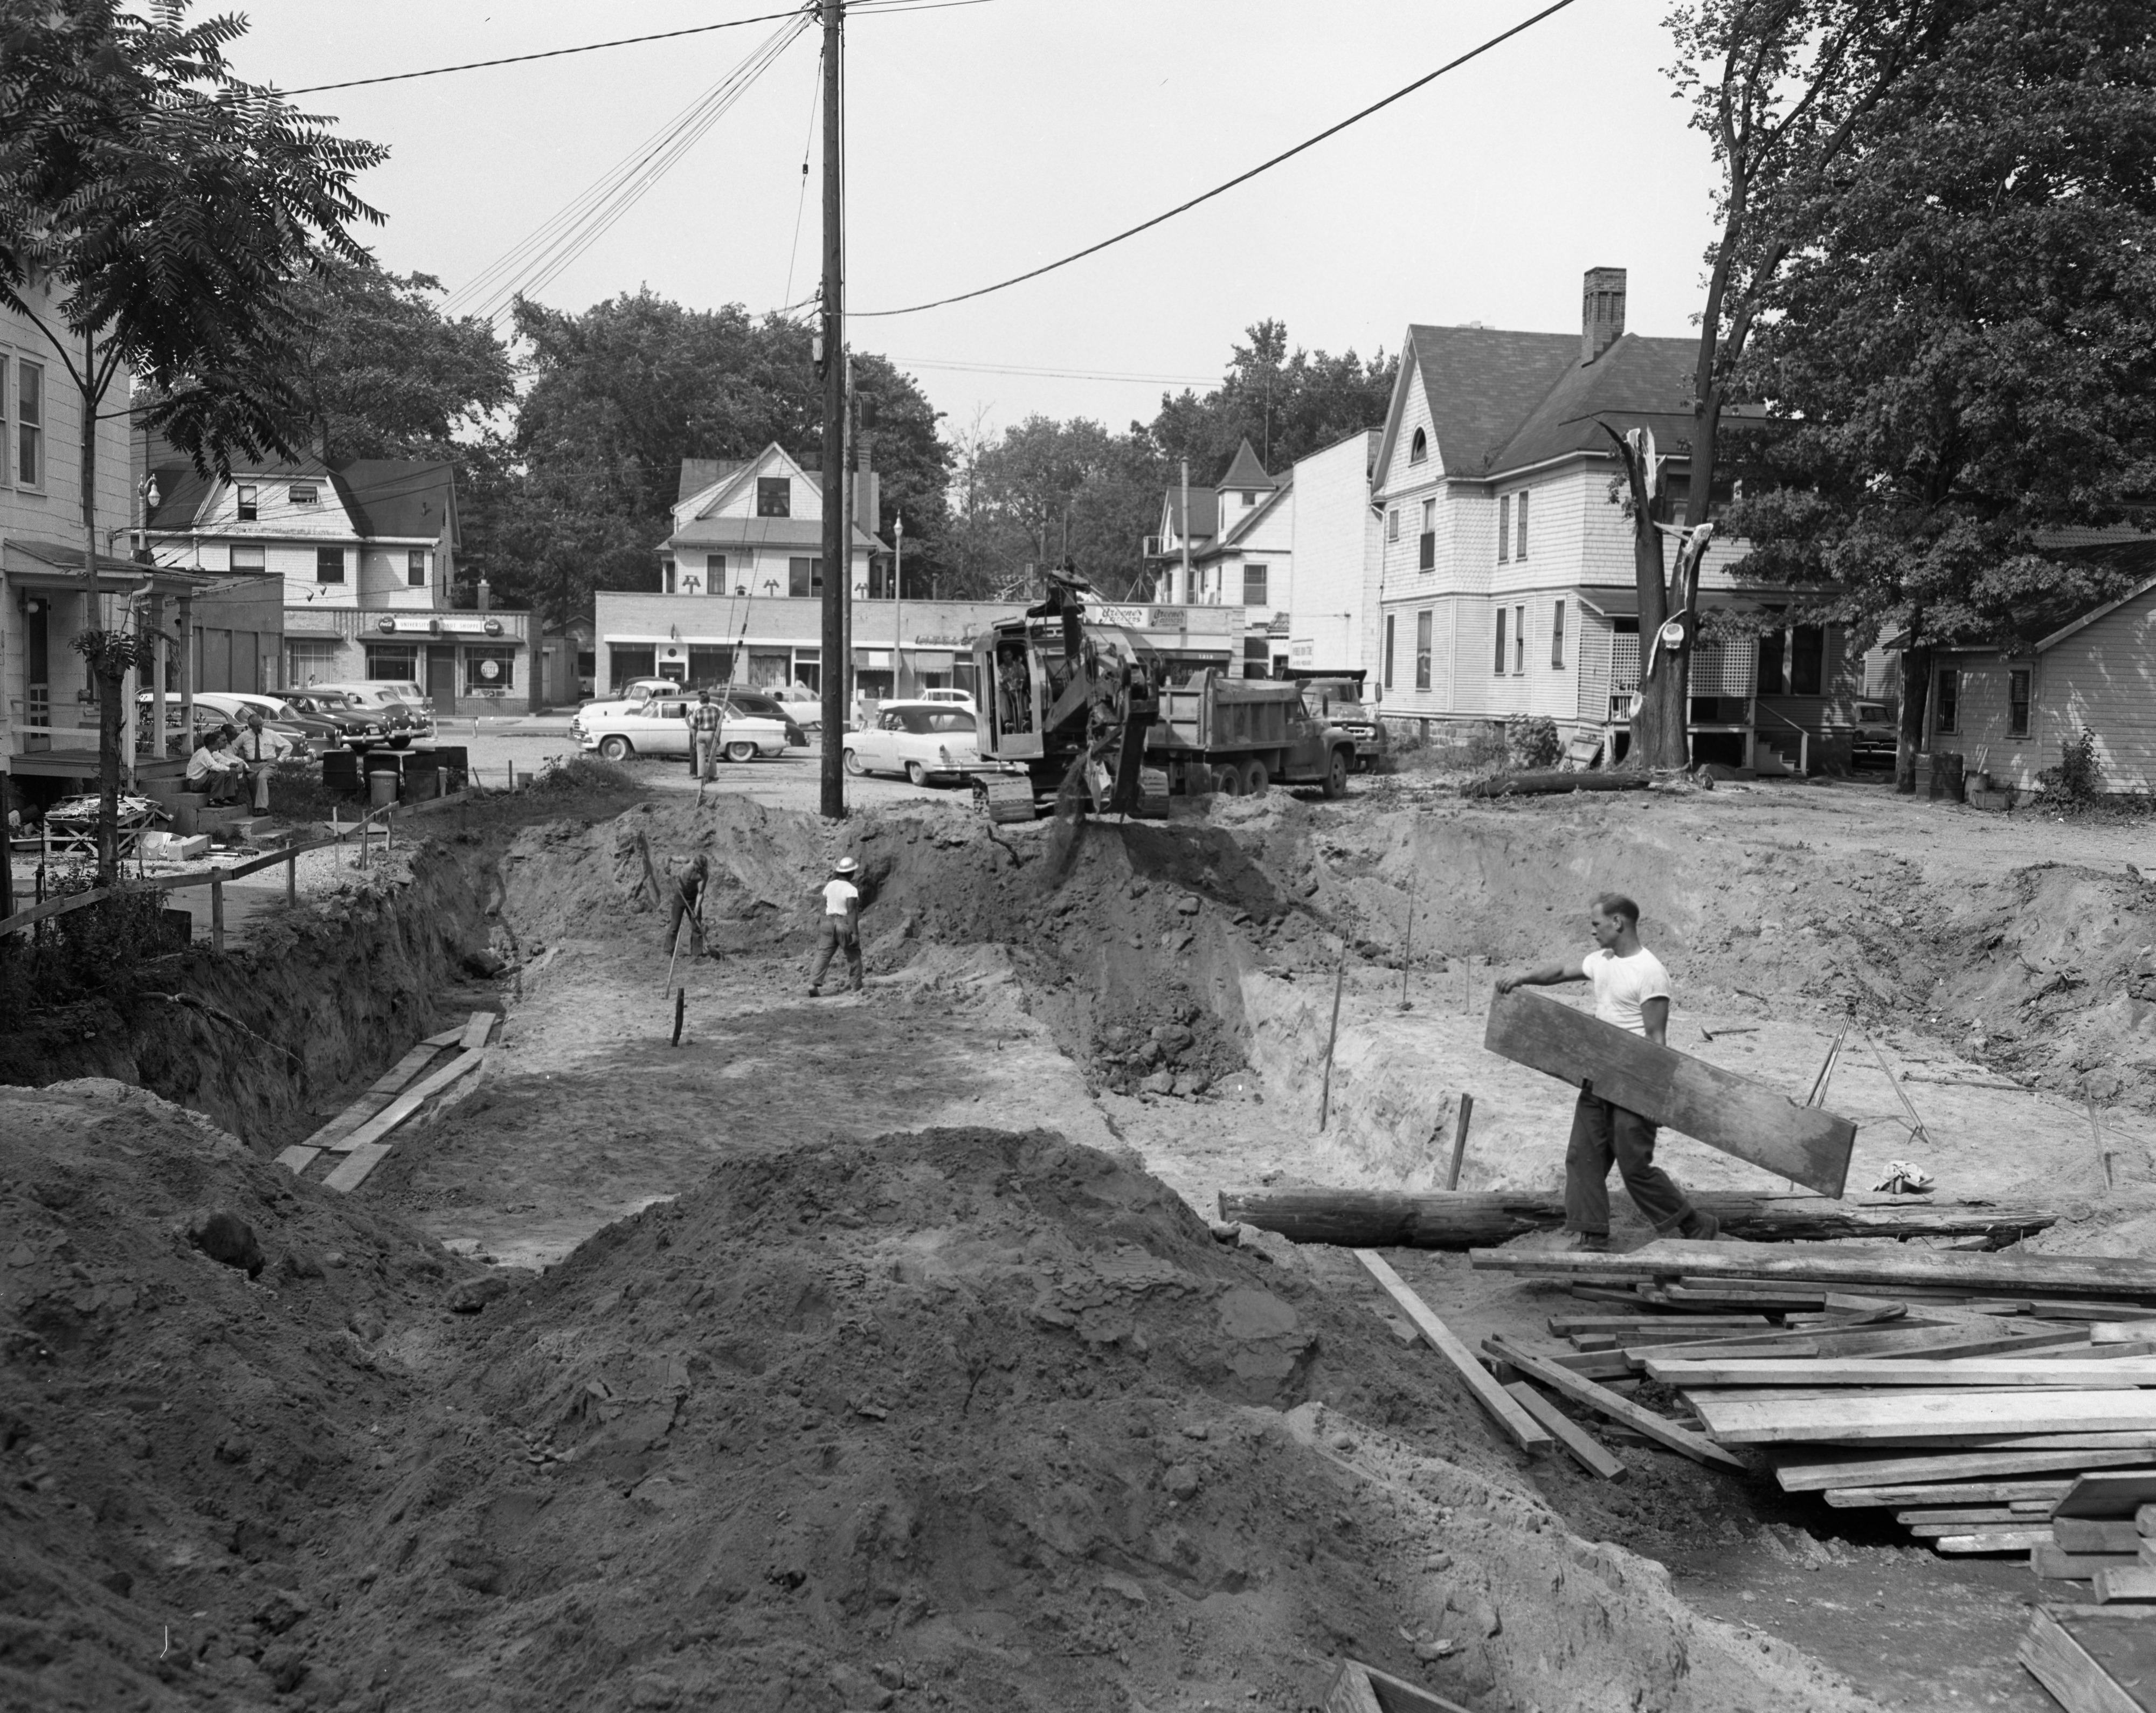 Construction starts on future Campus Theater at 1208 S. University, September 1956 image